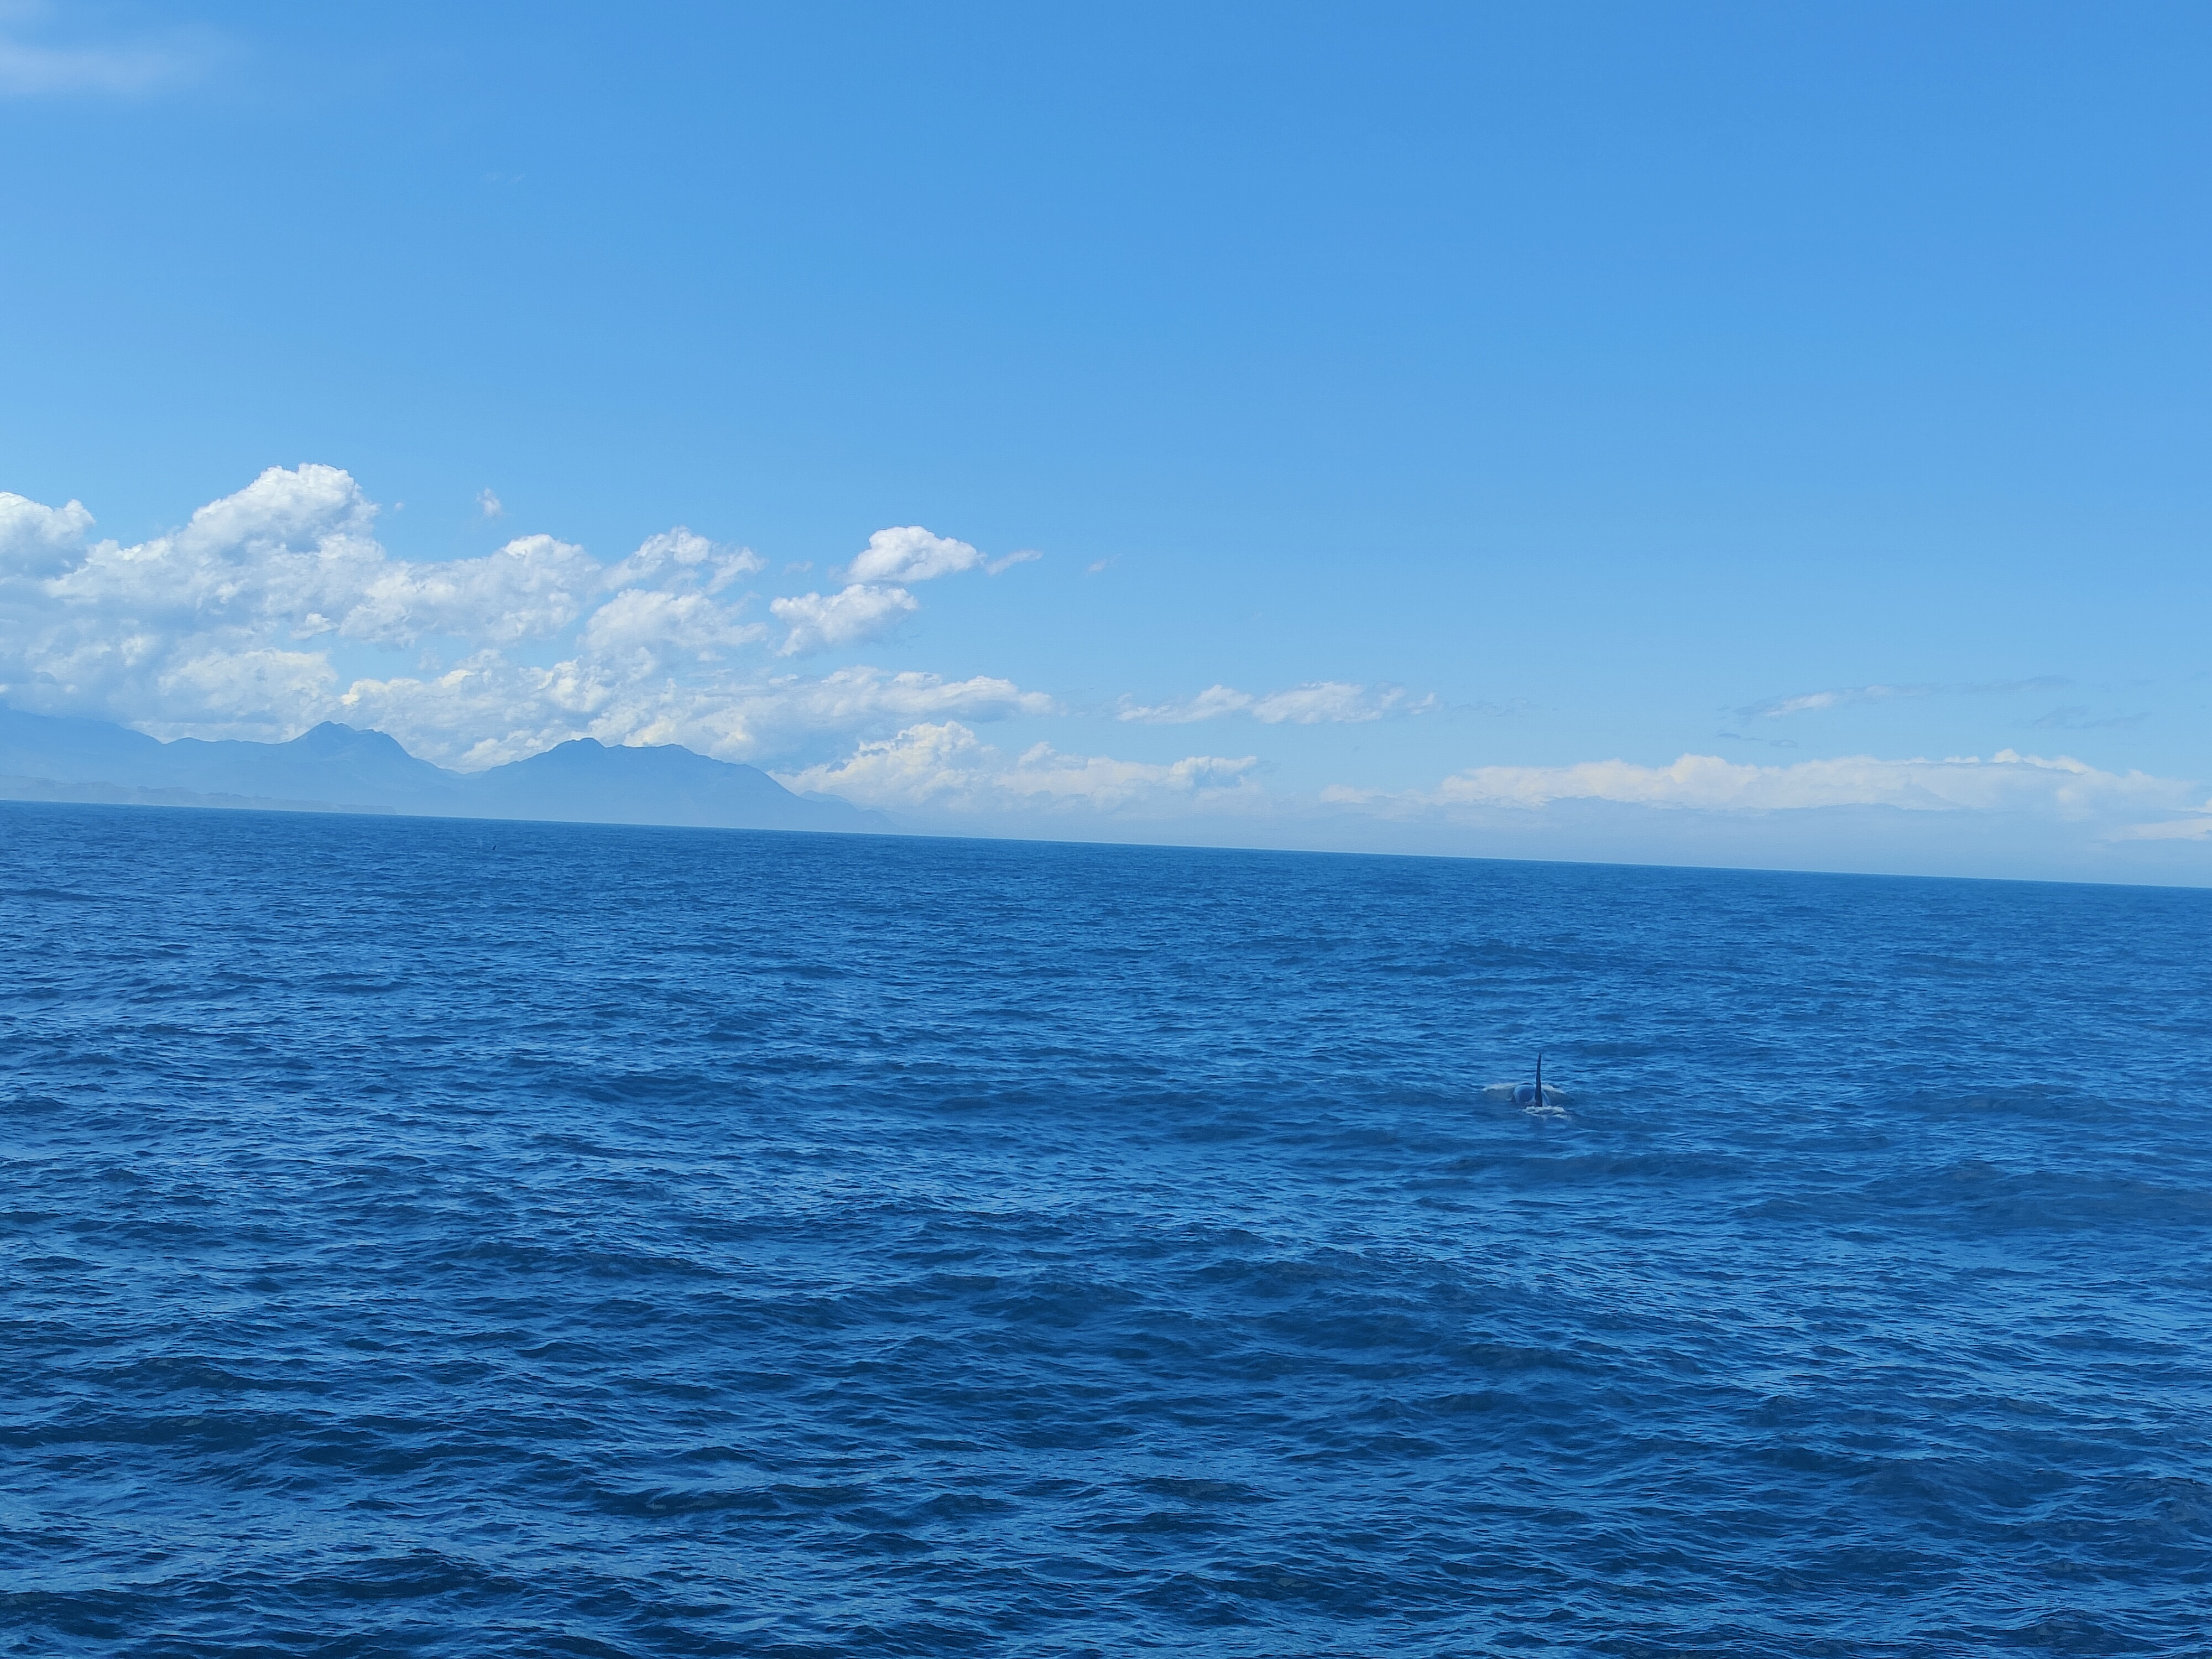 One of the orca we found on the tour